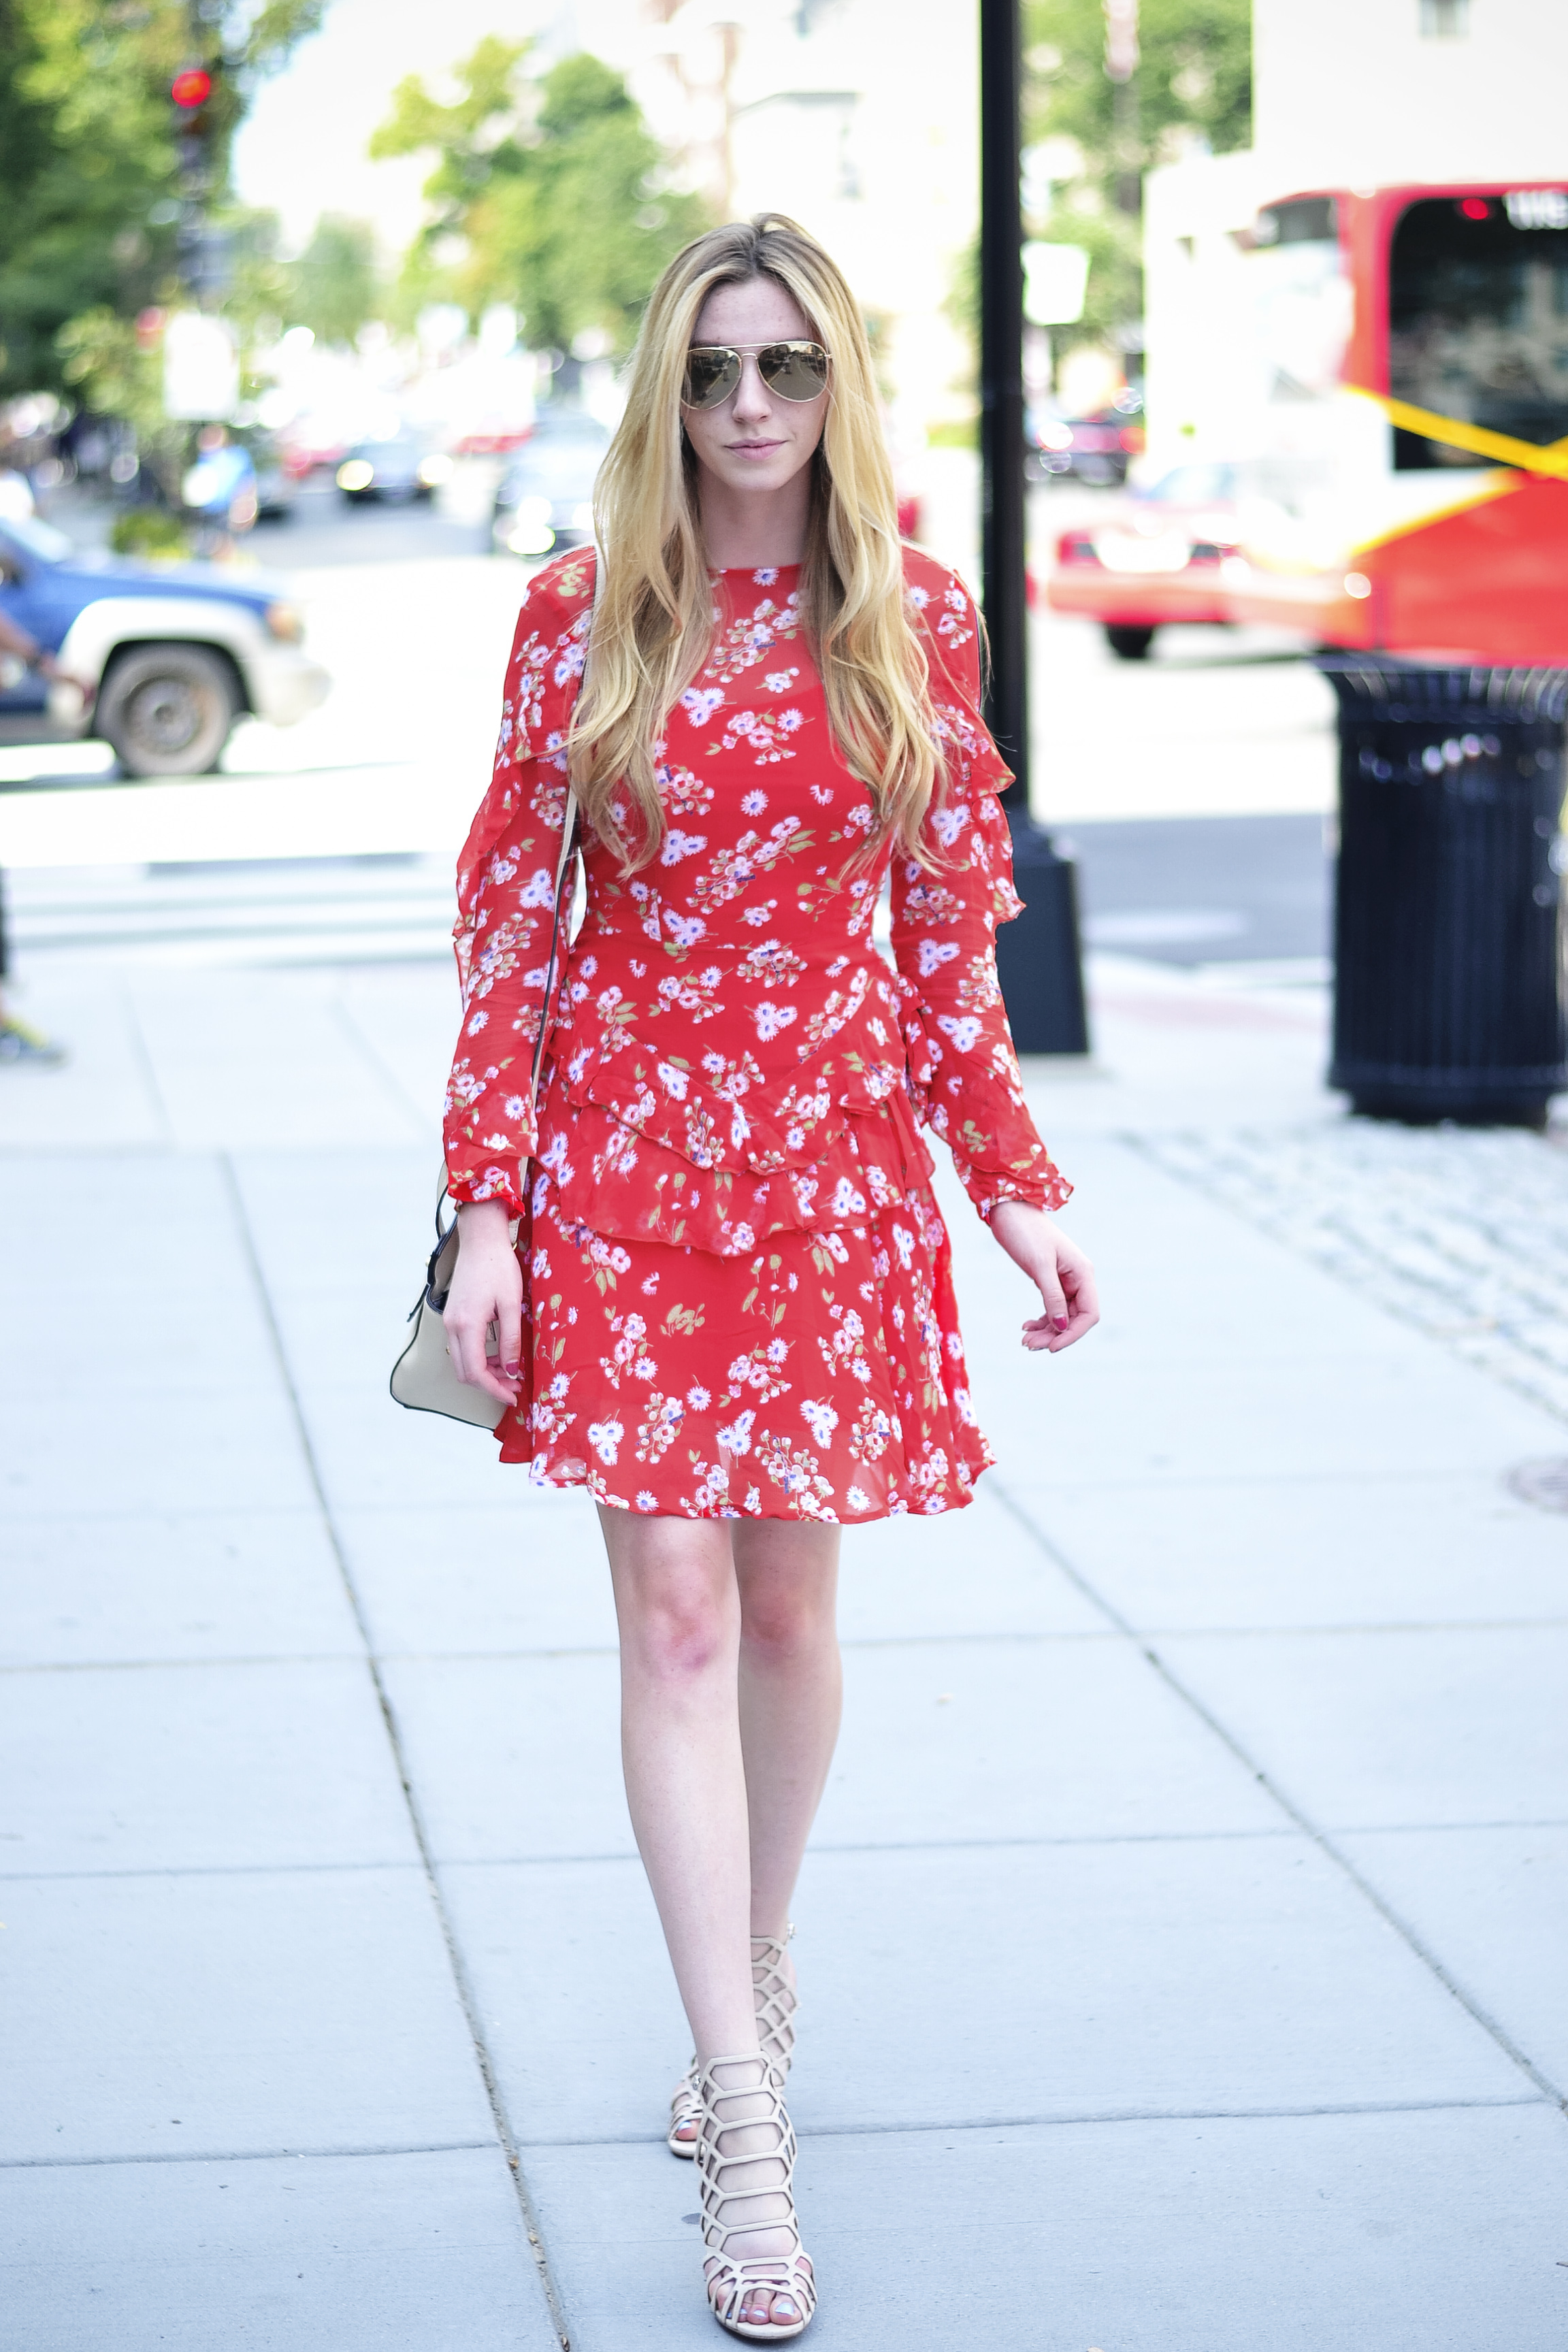 Blogger Red Floral Ruffle Dress (via Chic Now)